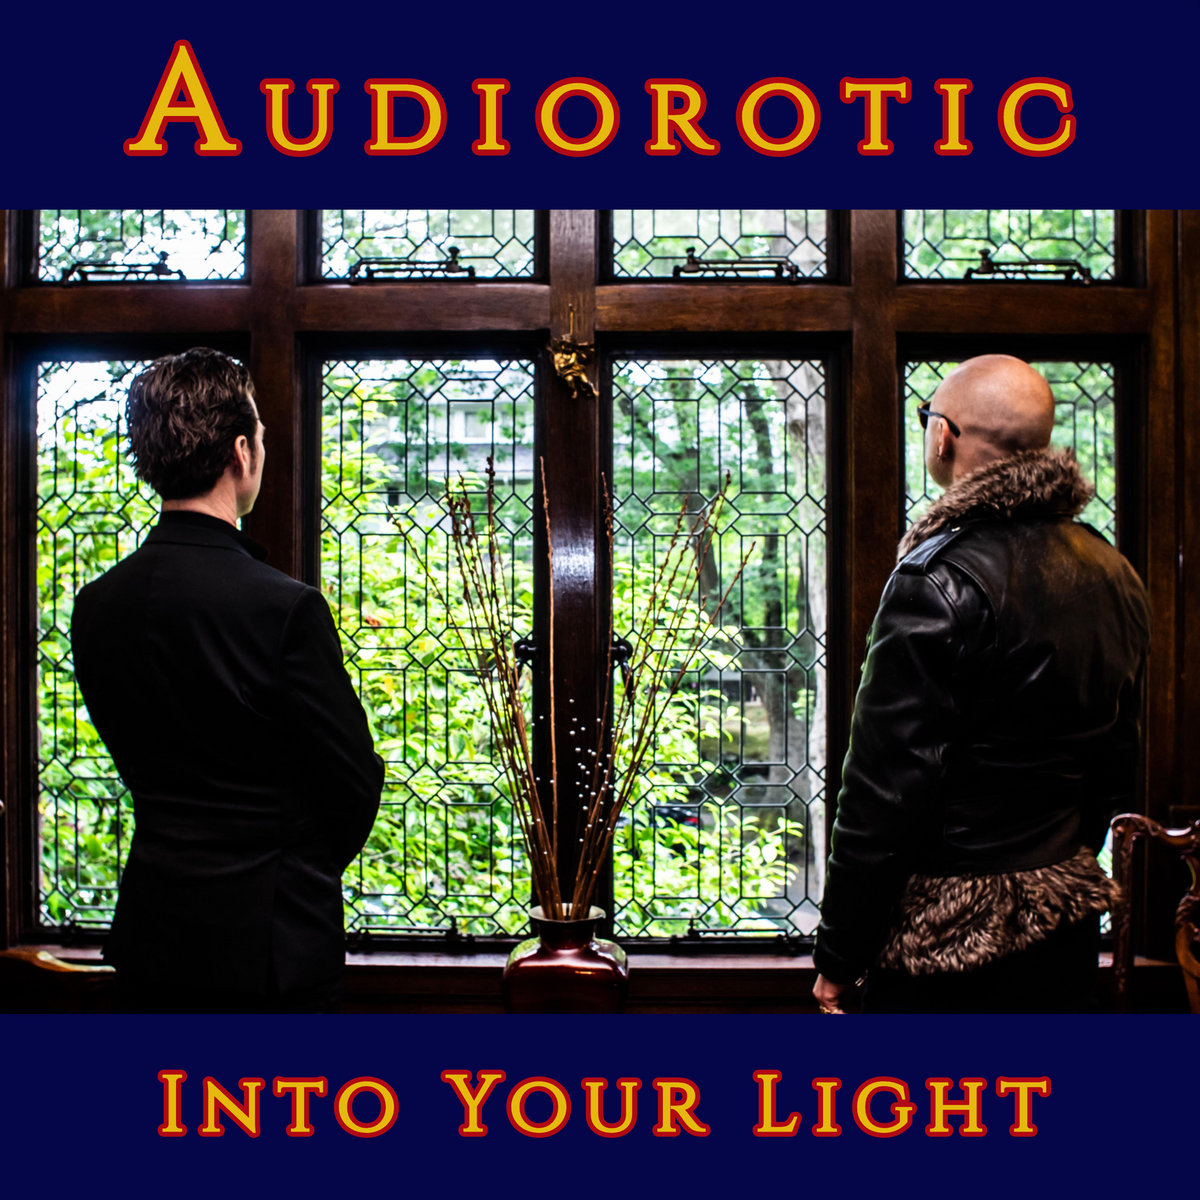 Into Your Light by Audiorotic